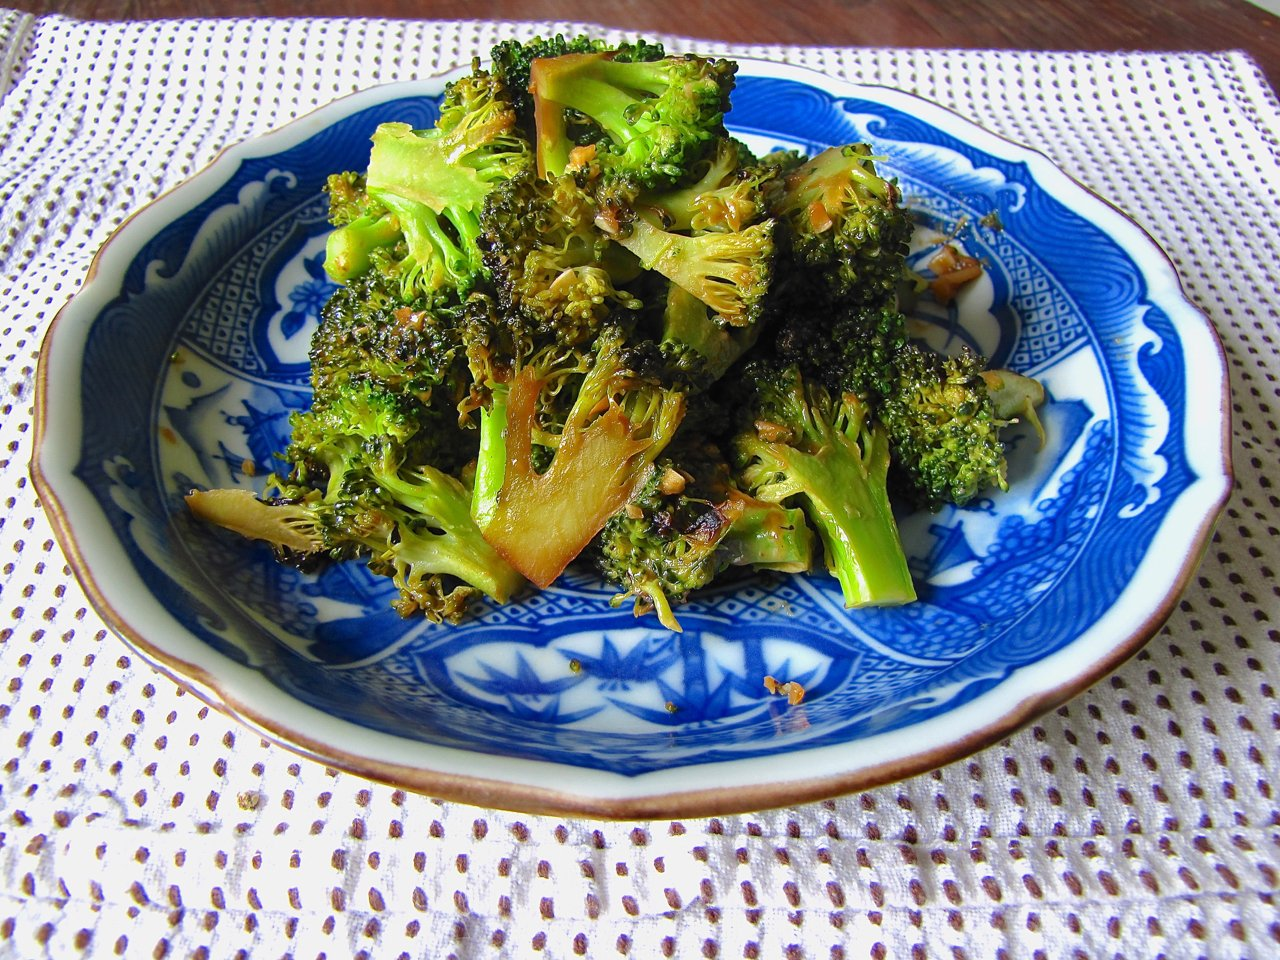 Pan Roasted Broccoli with Asian Flavors